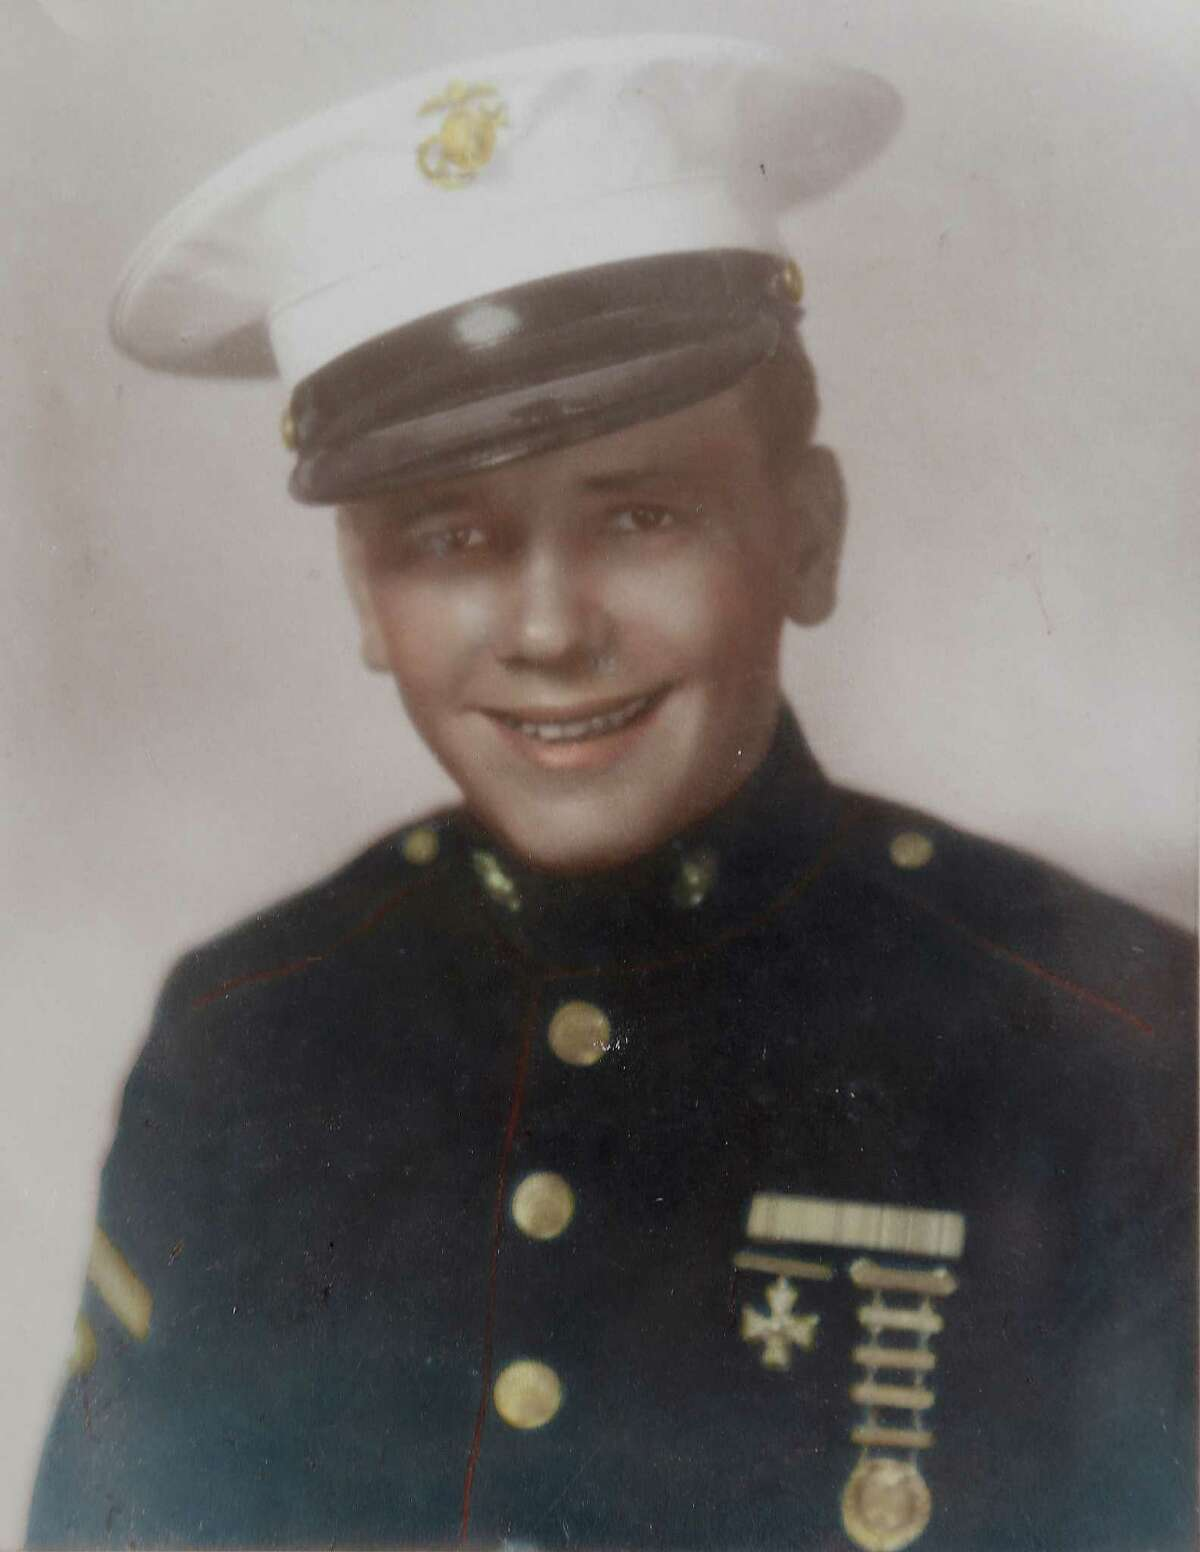 Bill Sherrill, then 15, lied about his age to join the U.S. Marines after Pearl Harbor.